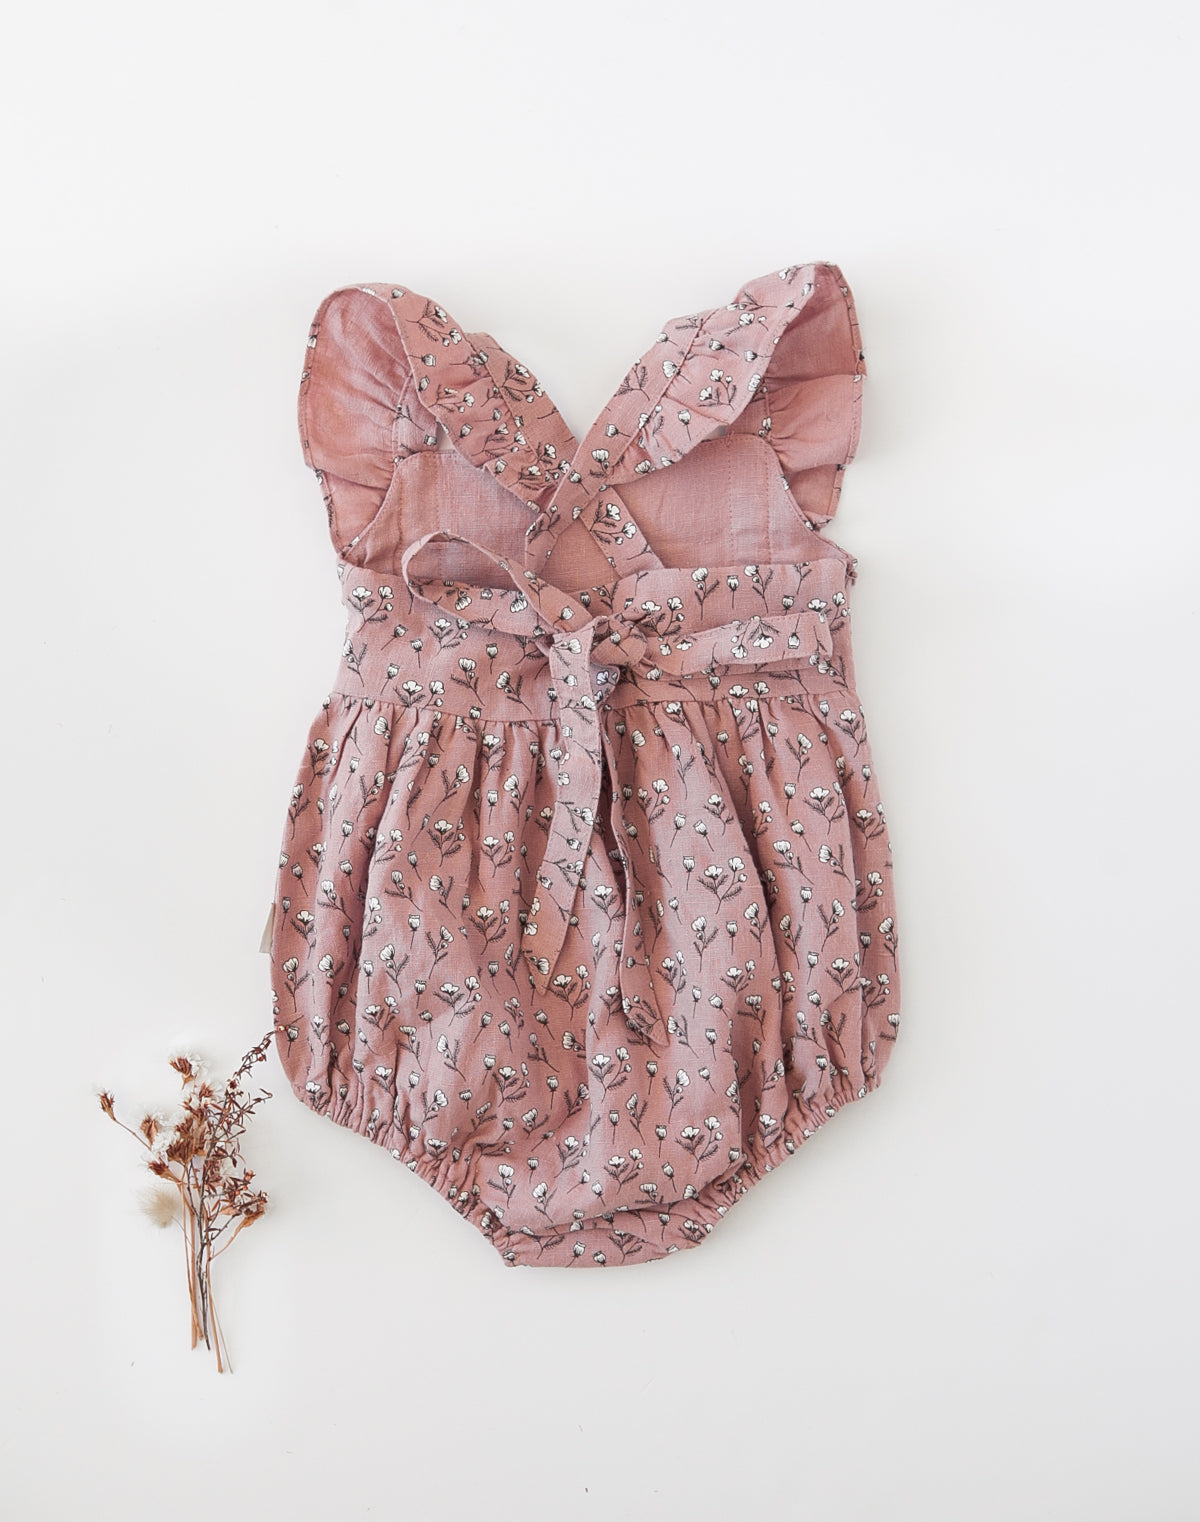 Karibou Karolina Linen Playsuit in Cotton Puff Print - Dusty Pink